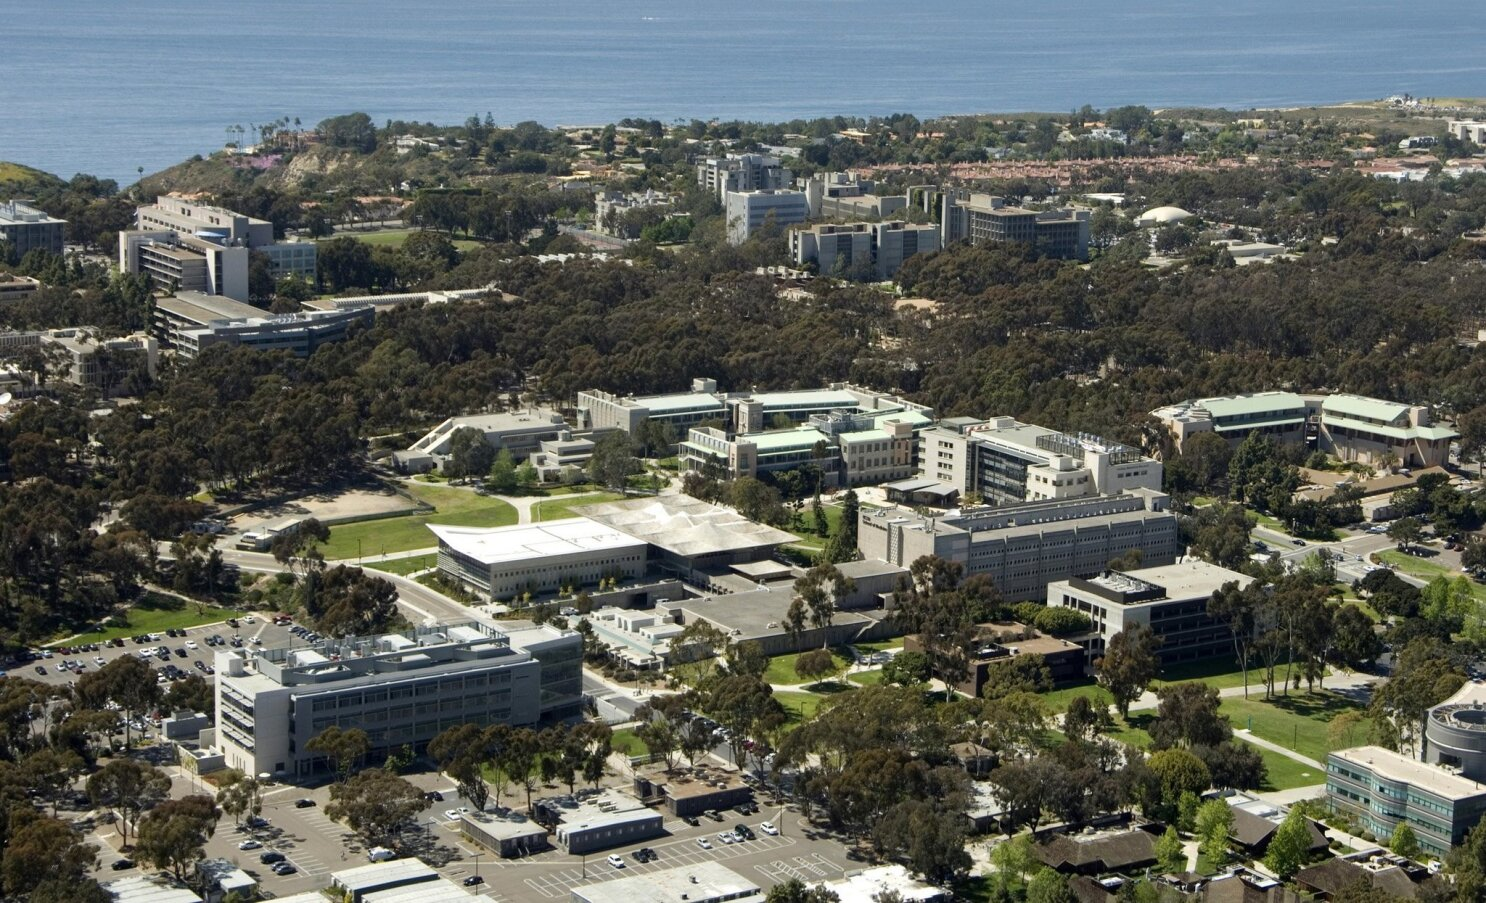 Uc San Diego >> Uc San Diego Called One Of Worst Colleges In Country For Free Speech